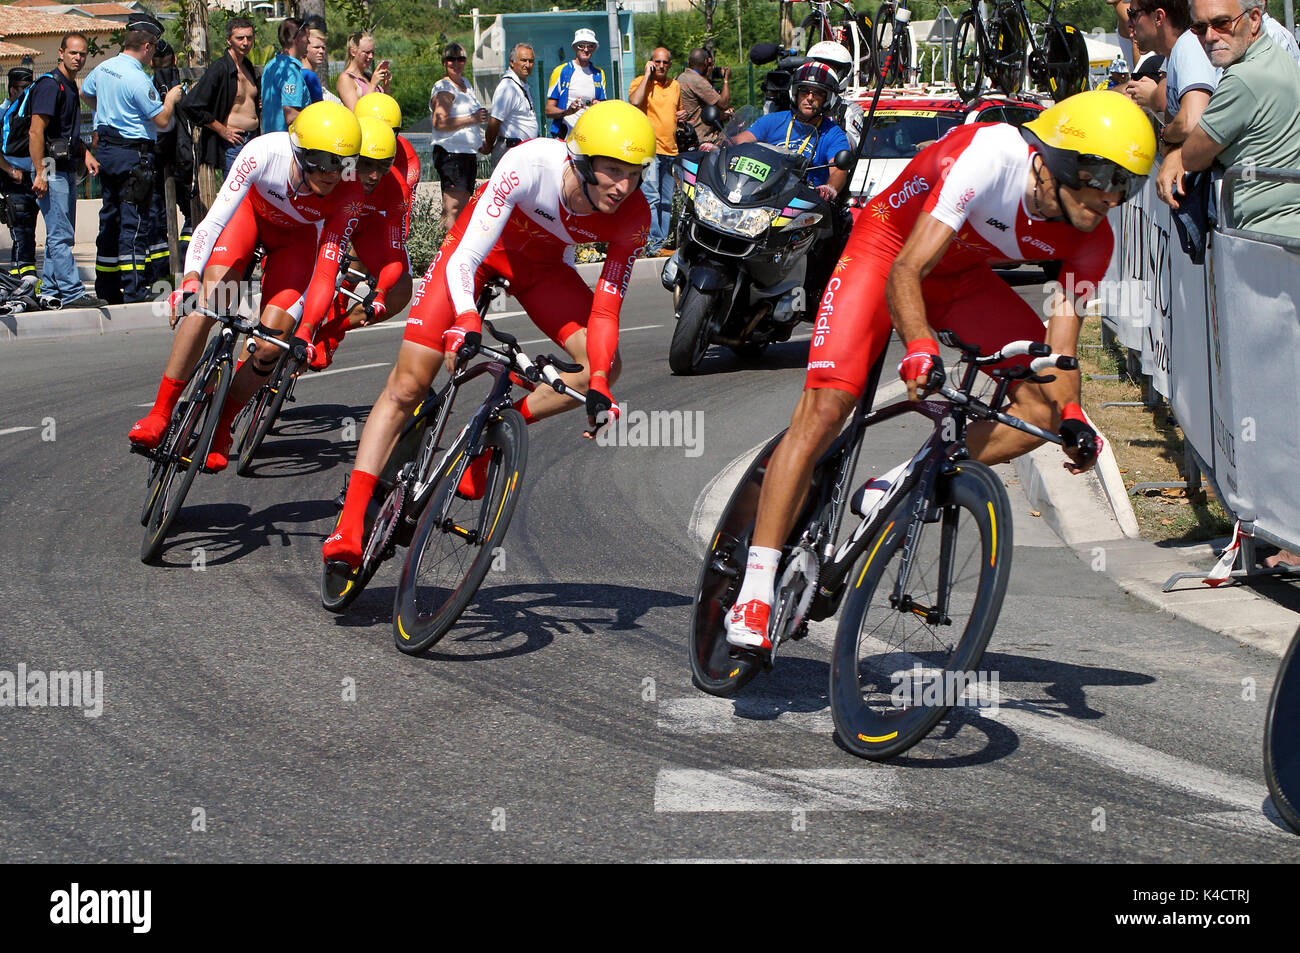 NICE - JULY 2ND : The TOUR 2013  (Tour de France) . COFIDIS Solutions Credits Team during Nice/Nice Stage 4 (25 km). - Stock Image